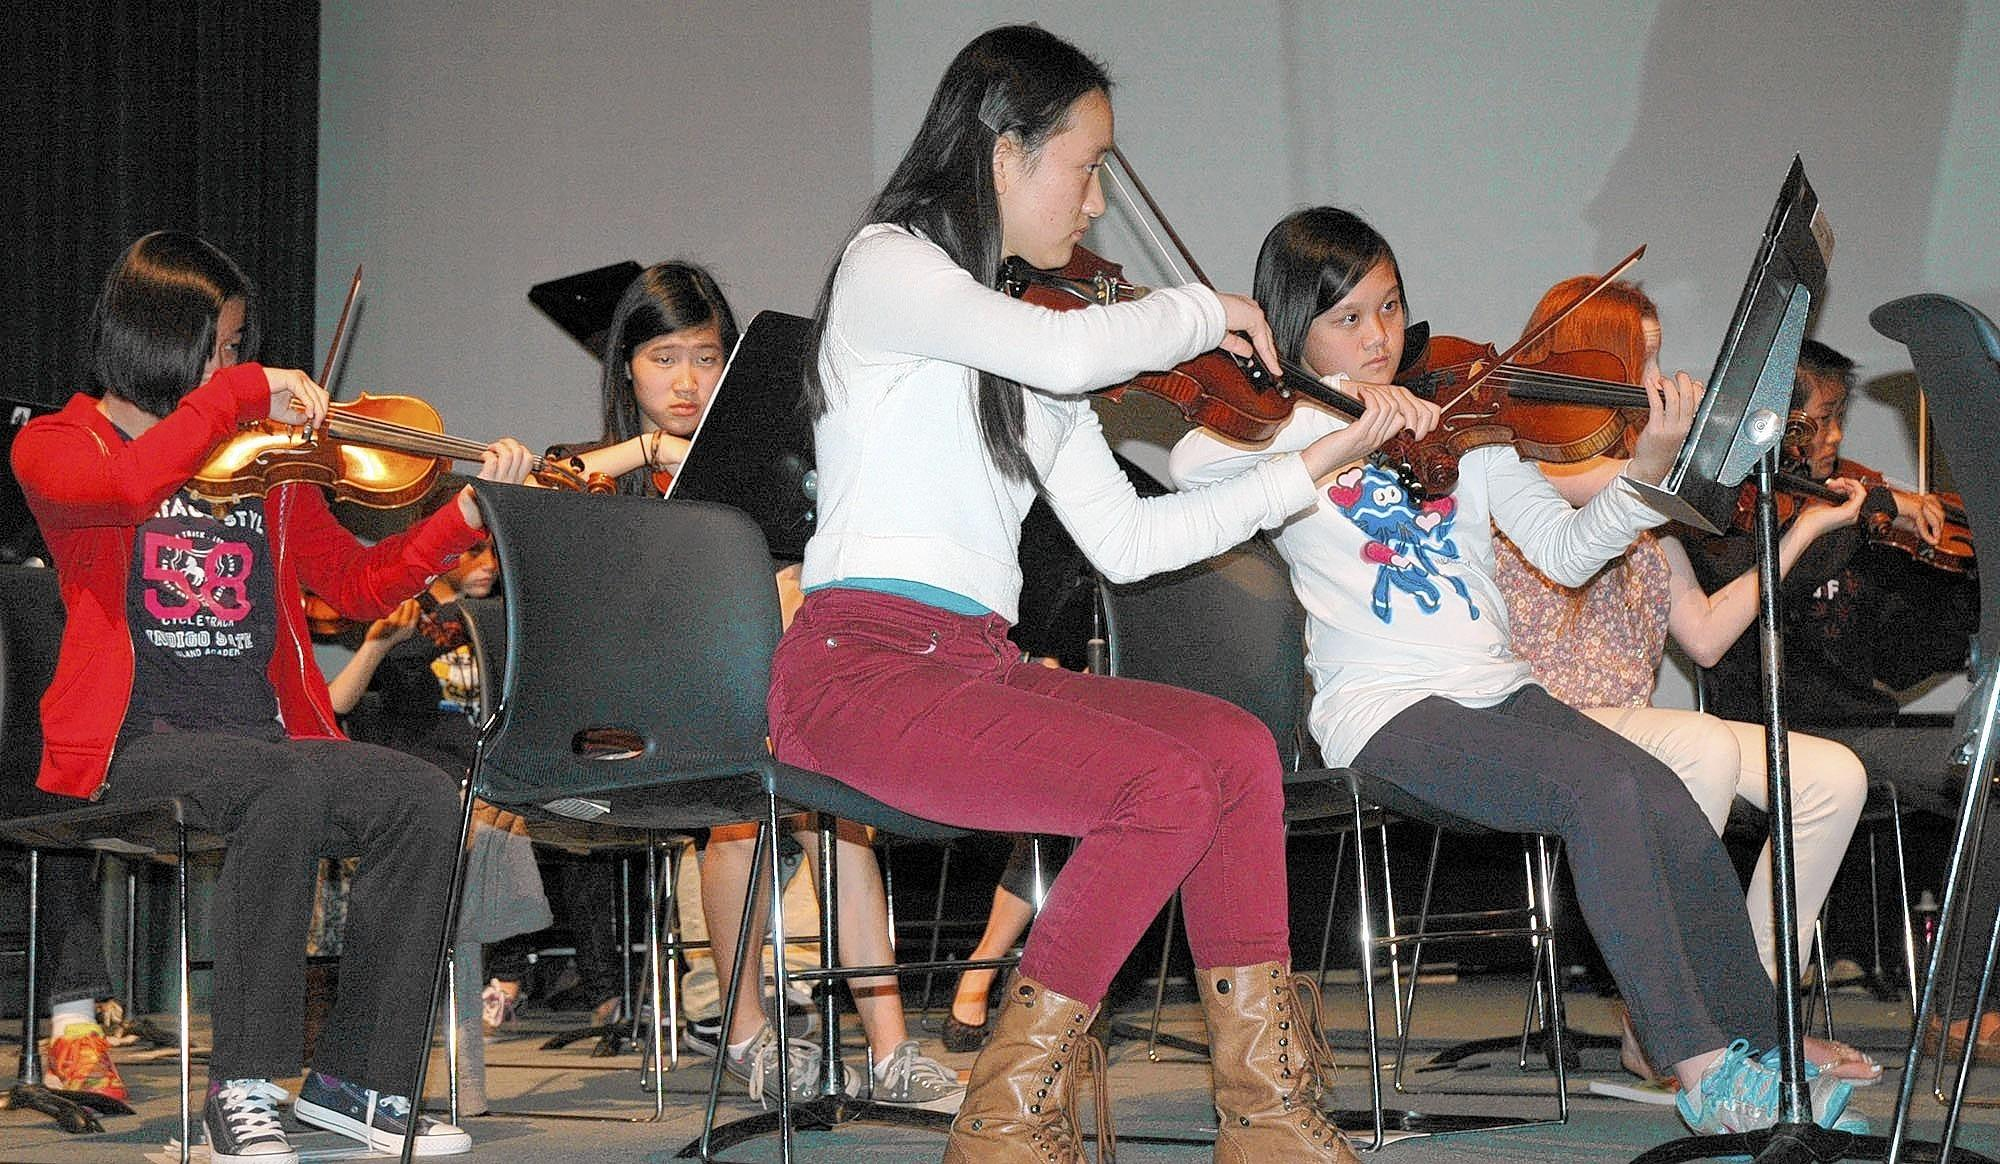 Members of the Glendale Youth Orchestra rehearse in preparation for Sunday's concert at the Alex Theatre in Glendale.